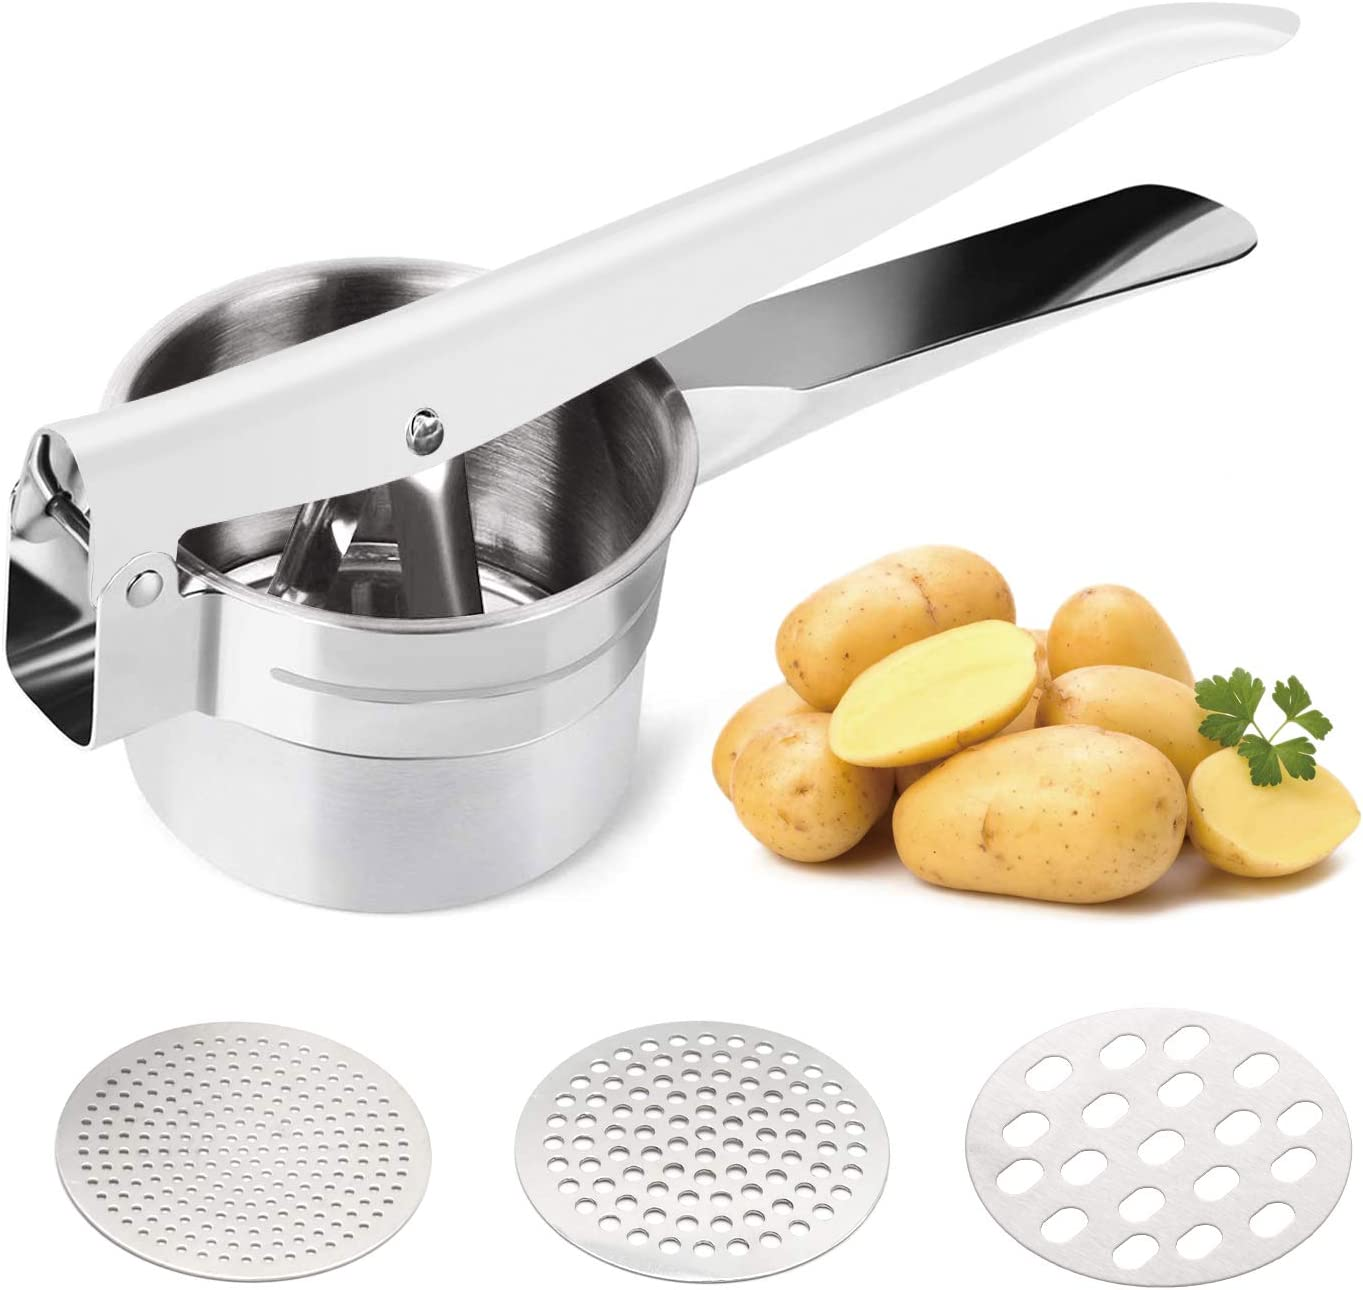 Delyking Stainless Steel Potato Ricer, Baby Food, Vegetables and Fruit Masher, Large Capacity, with 3 Interchangeable Fineness Discs, Dishwasher Safe